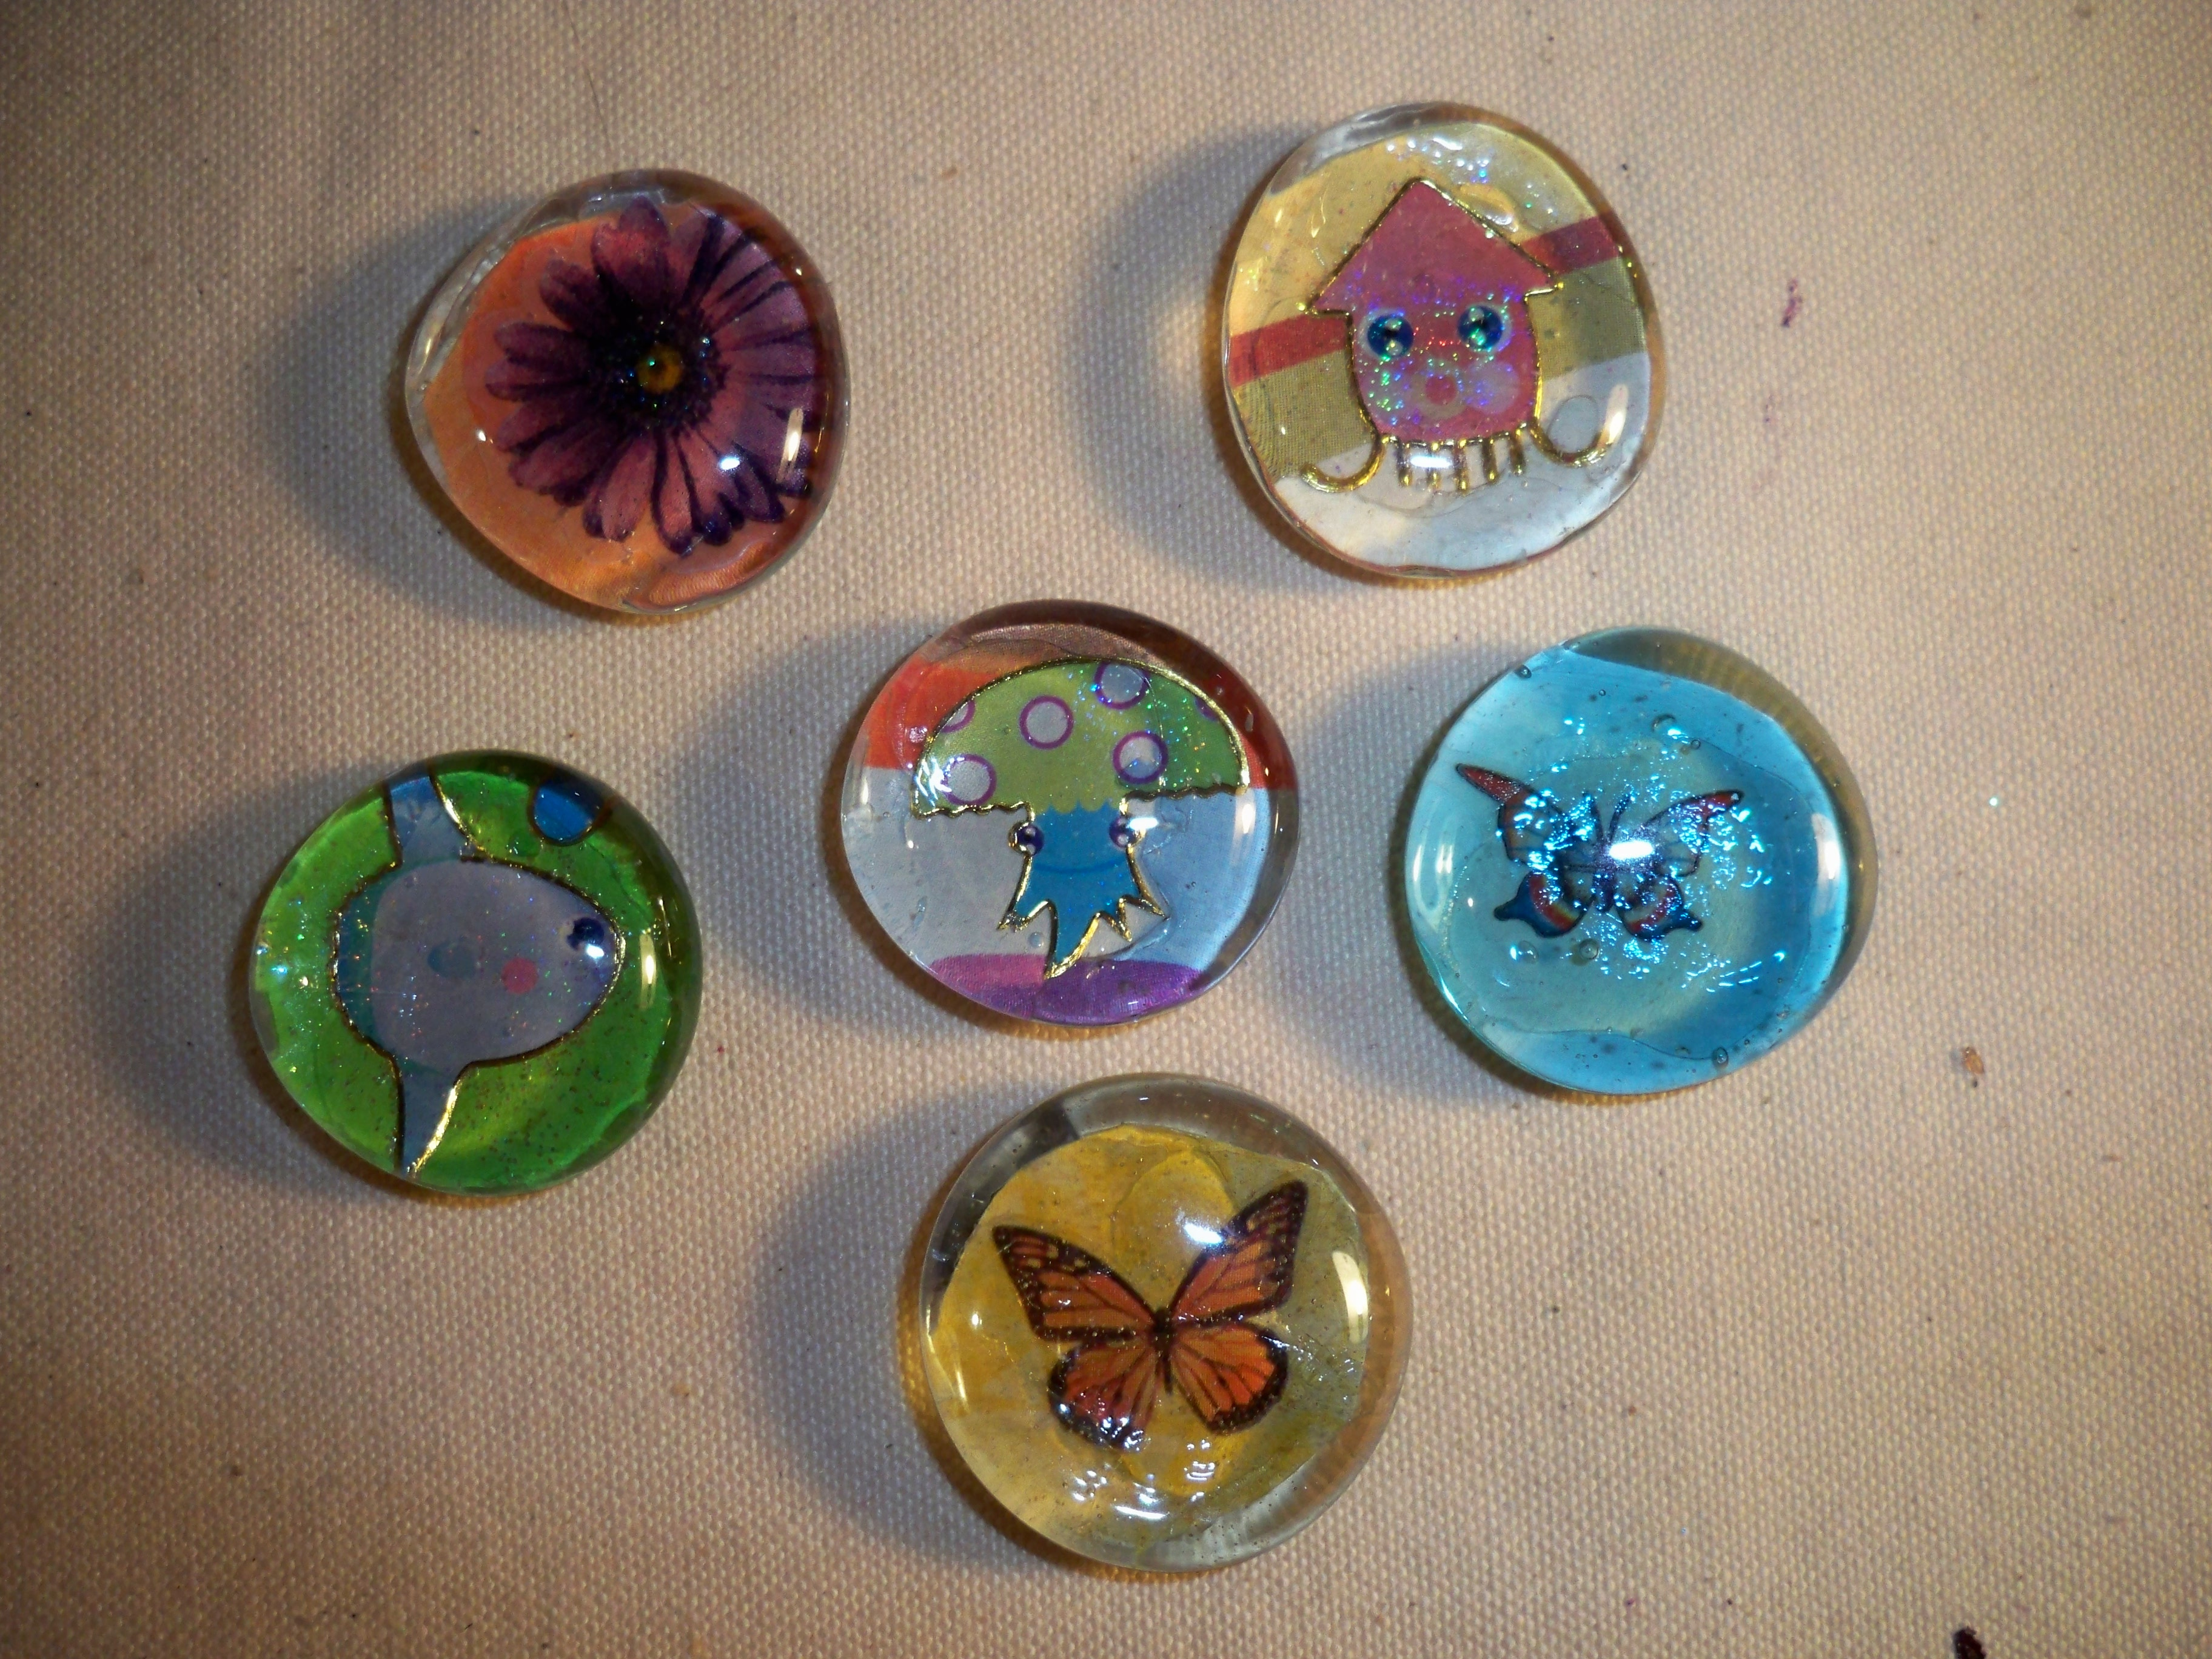 Flat glass marbles crafts flat glass marbles crafts these turned out to be incredibly inexpensive